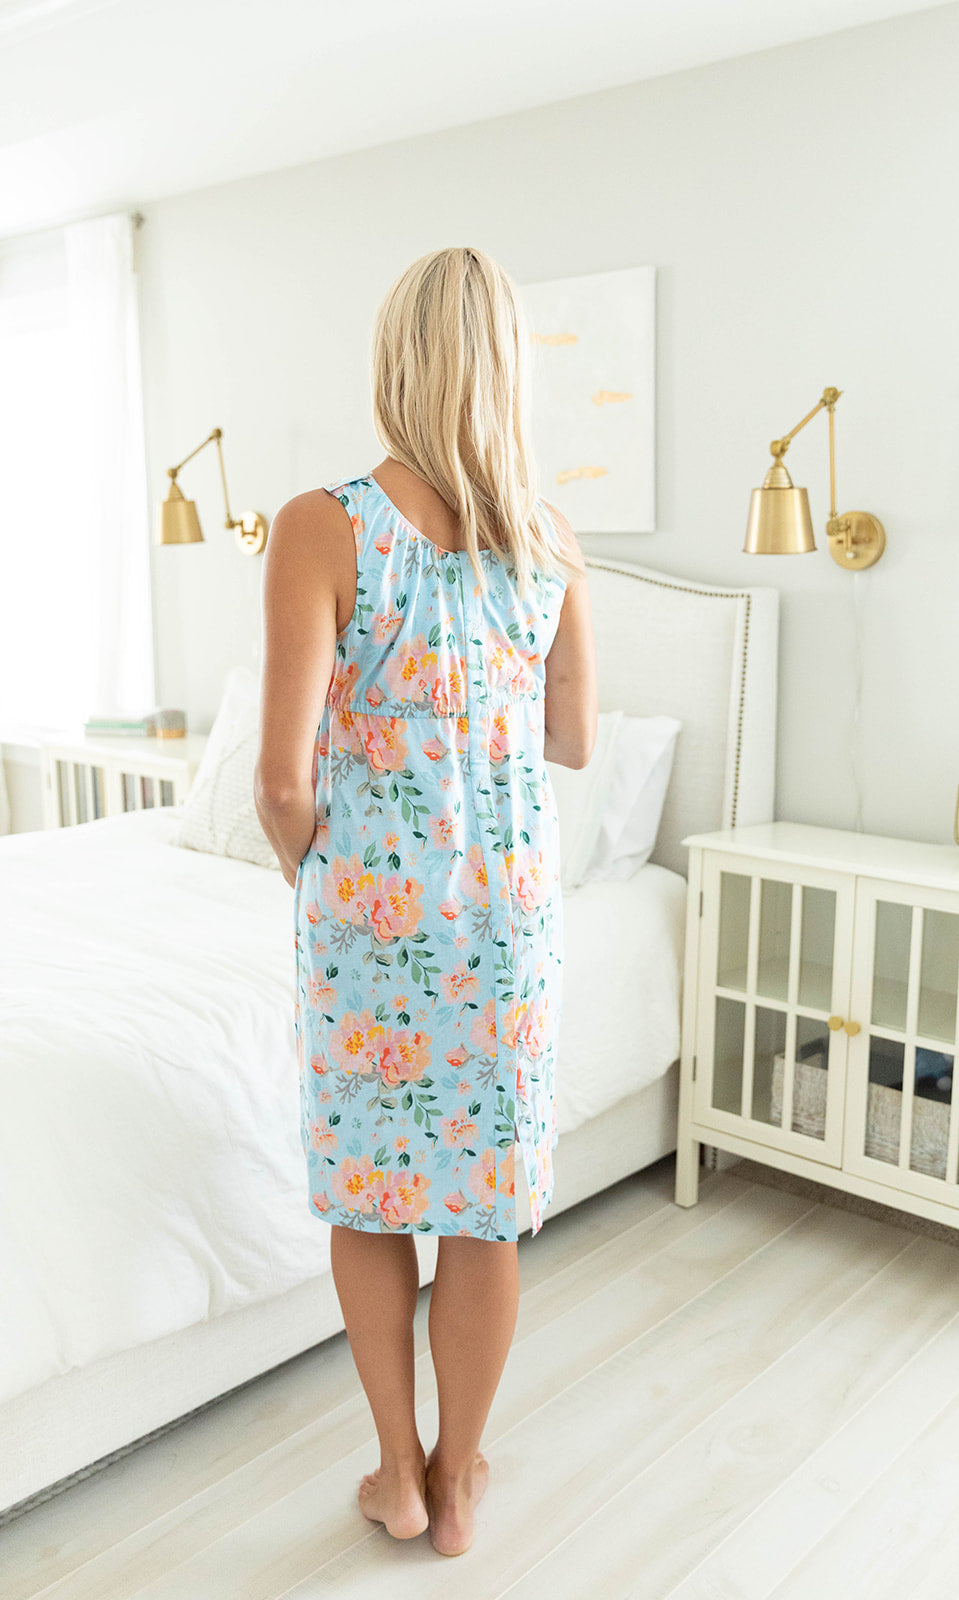 Jade 3 in 1 Labor Gown